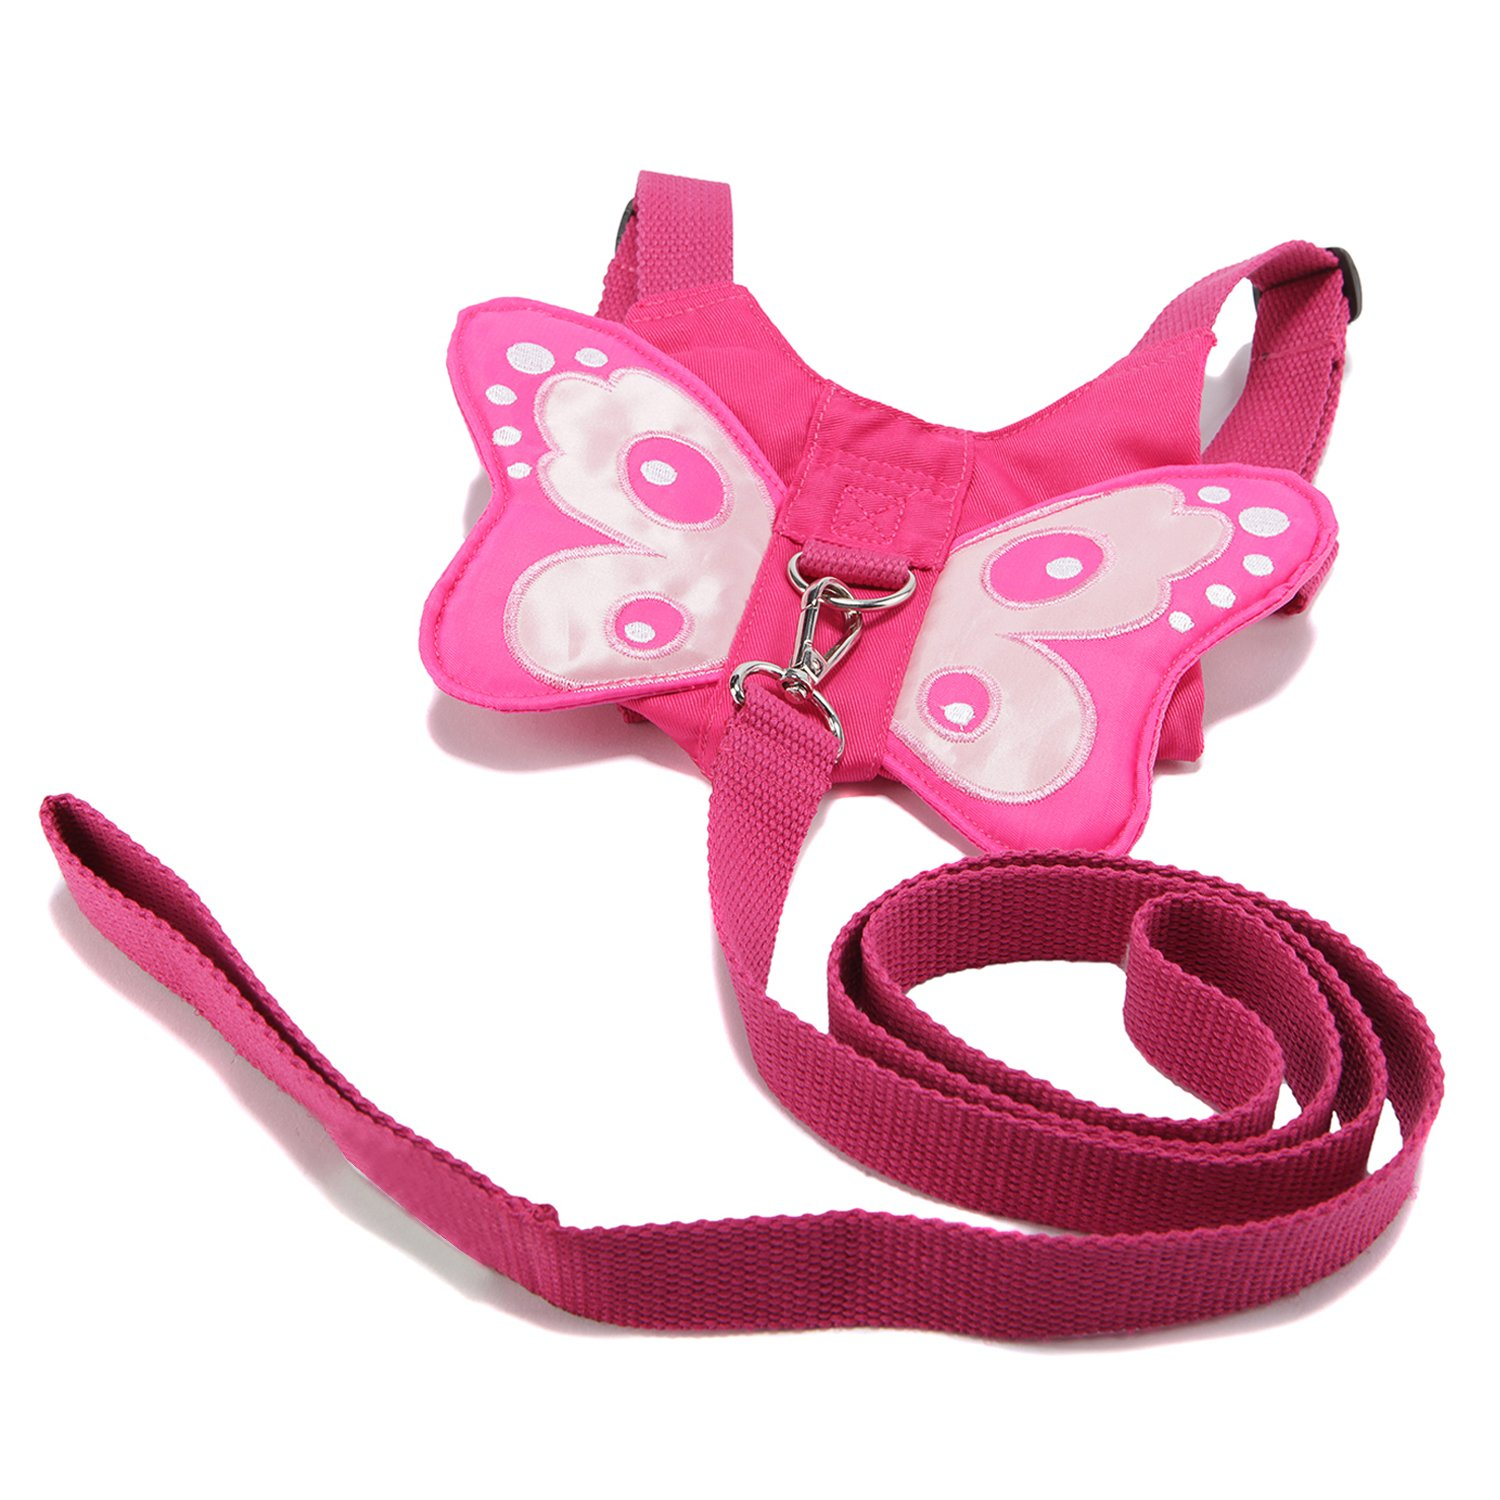 EPLAZA Baby Toddler Walking Safety Butterfly Belt Harness with Leash Child Kid Assistant Strap (a) by EPLAZA (Image #3)